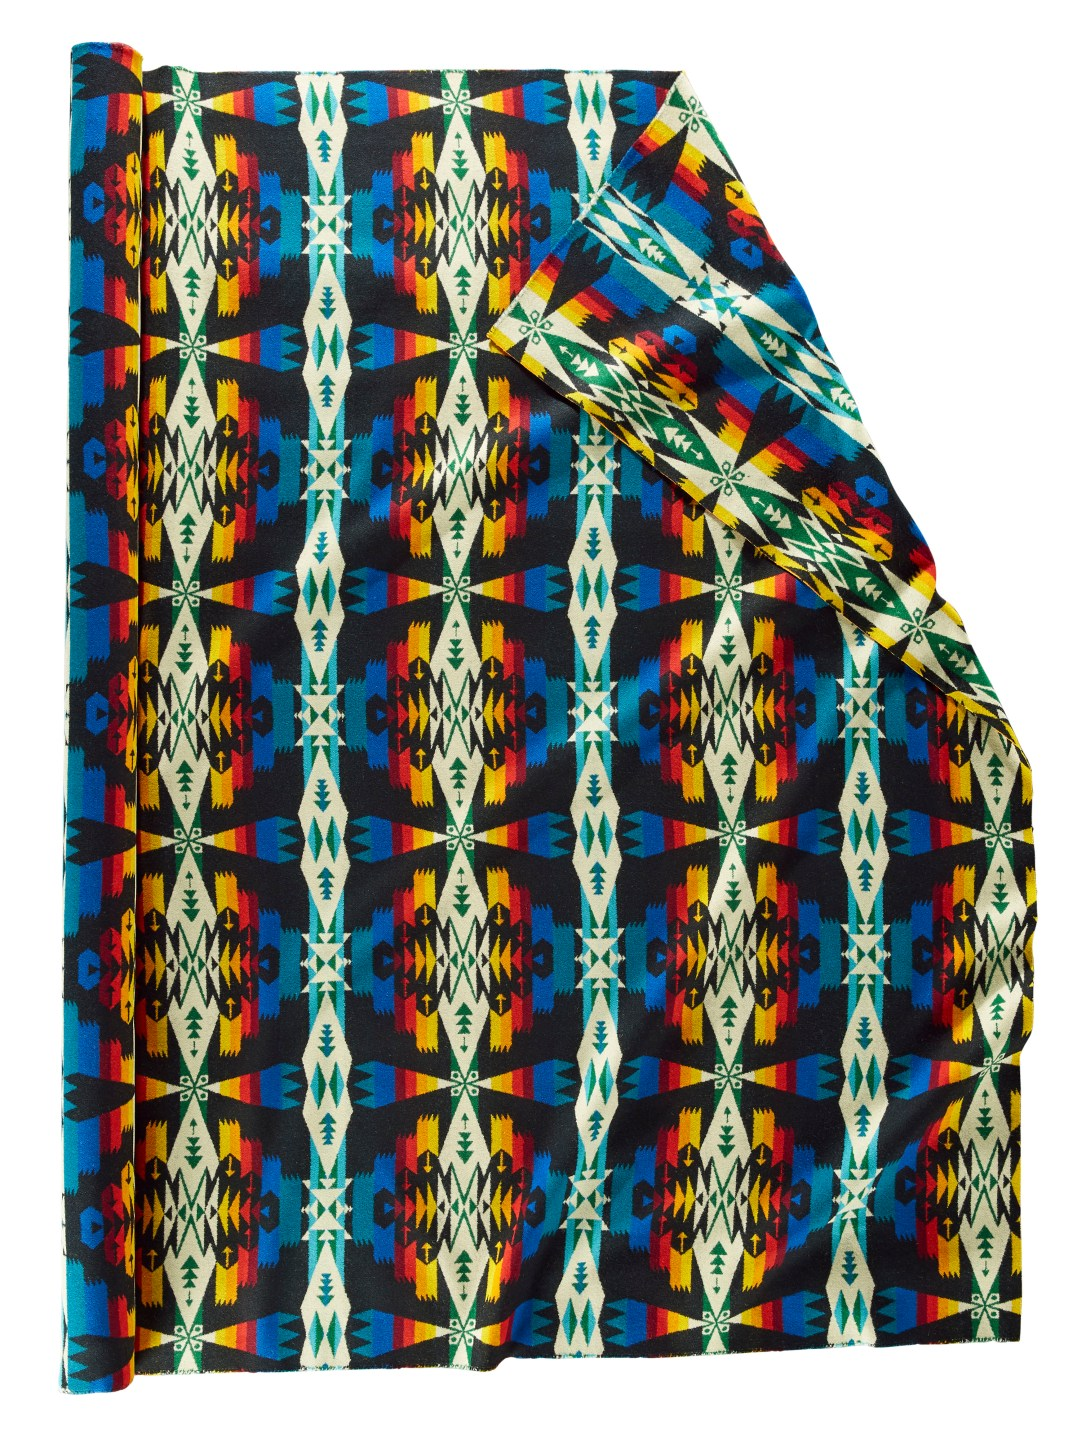 A roll of Pendleton wool fabric in Tucson Black, a black background with interlocking shapes in electric blue, red, yellow and white.